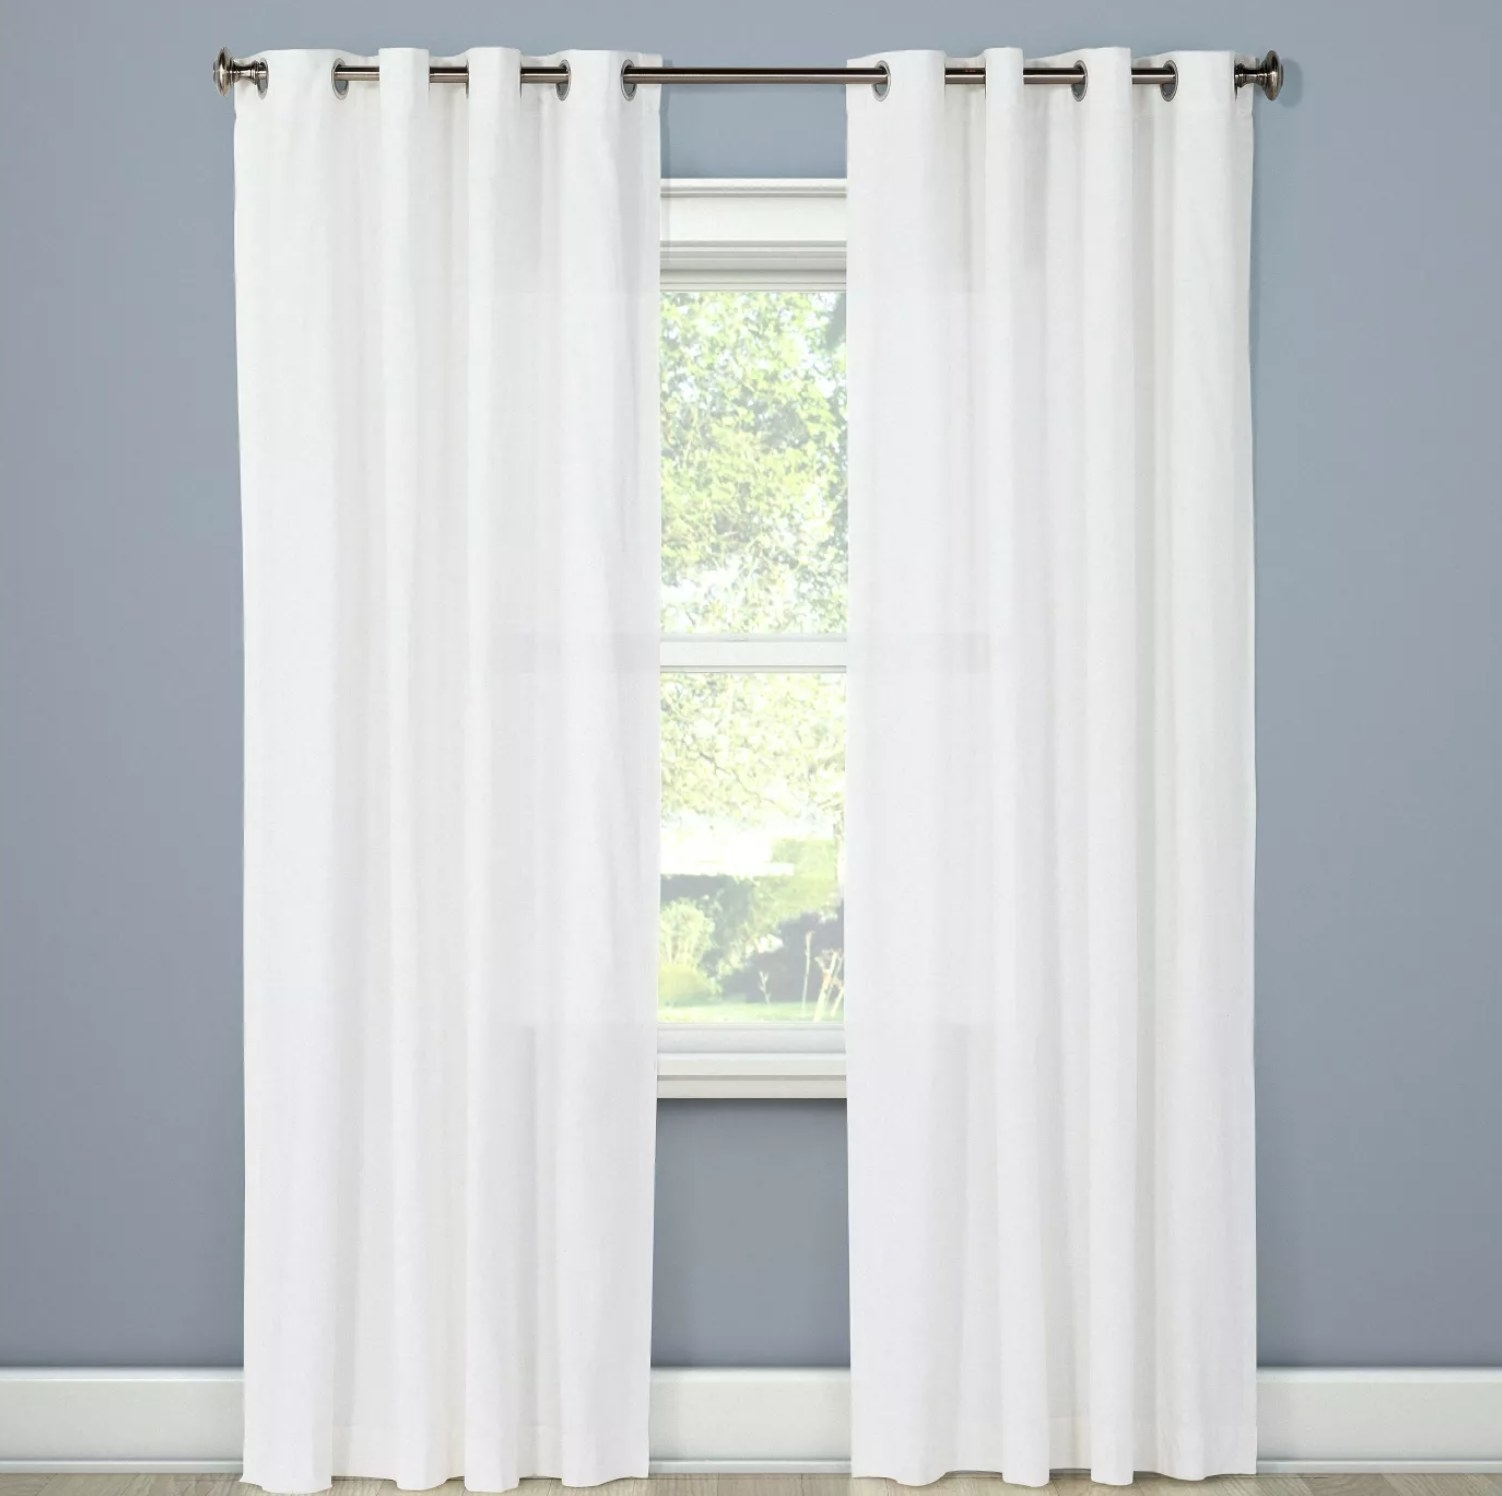 the white curtains hanging over a window against a blue wall